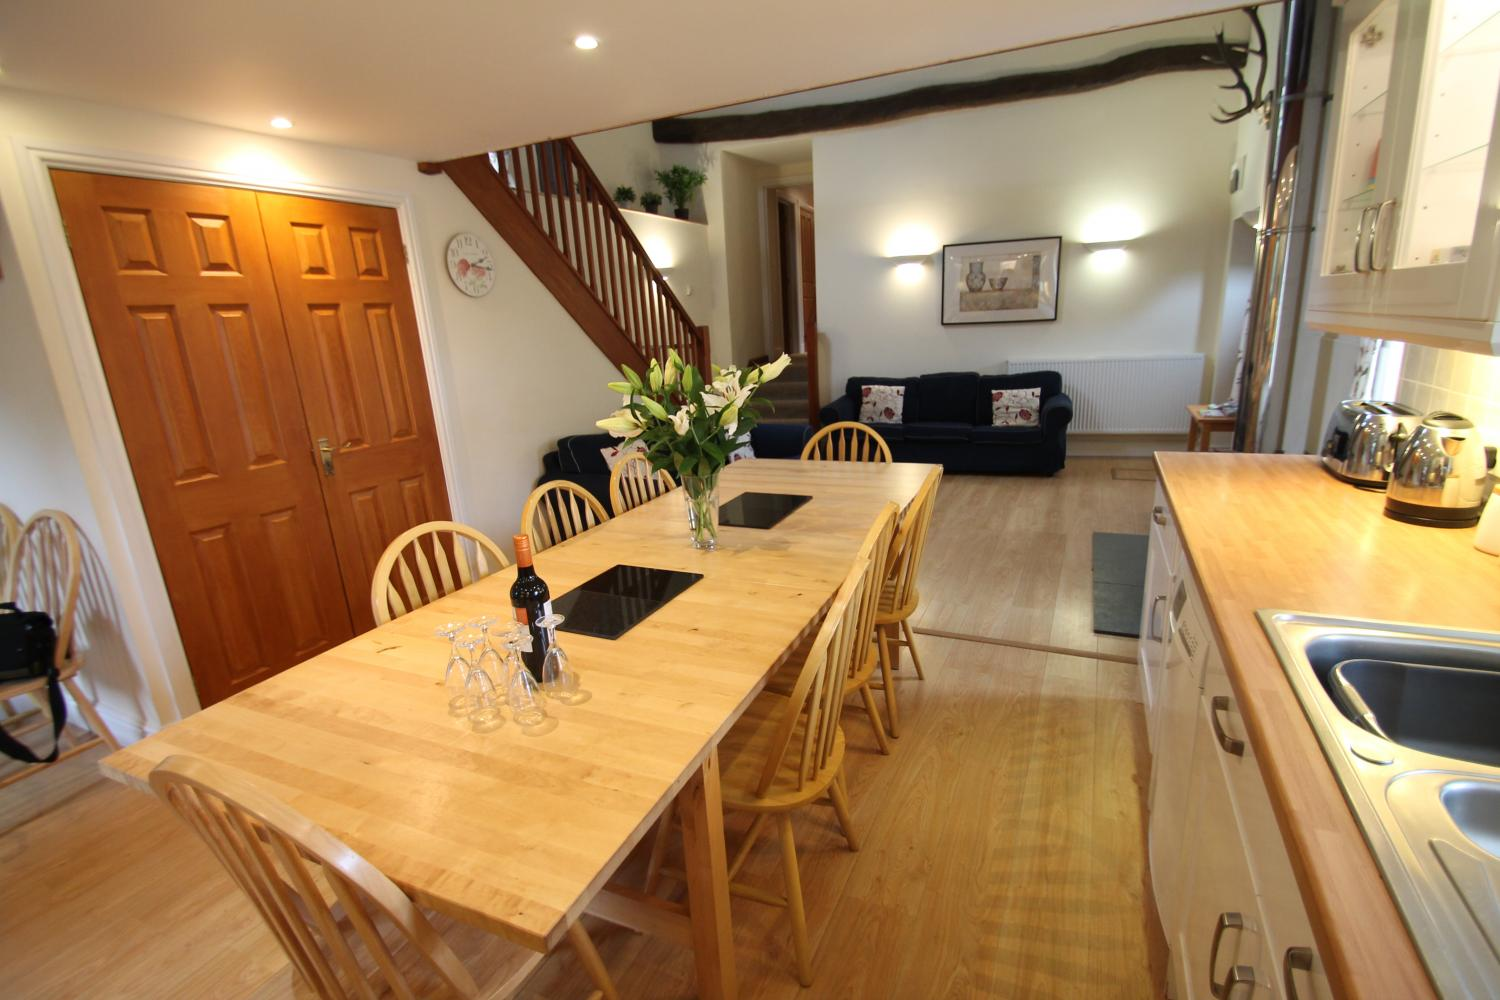 Yenworthy Mill self catering accommodation kitchen